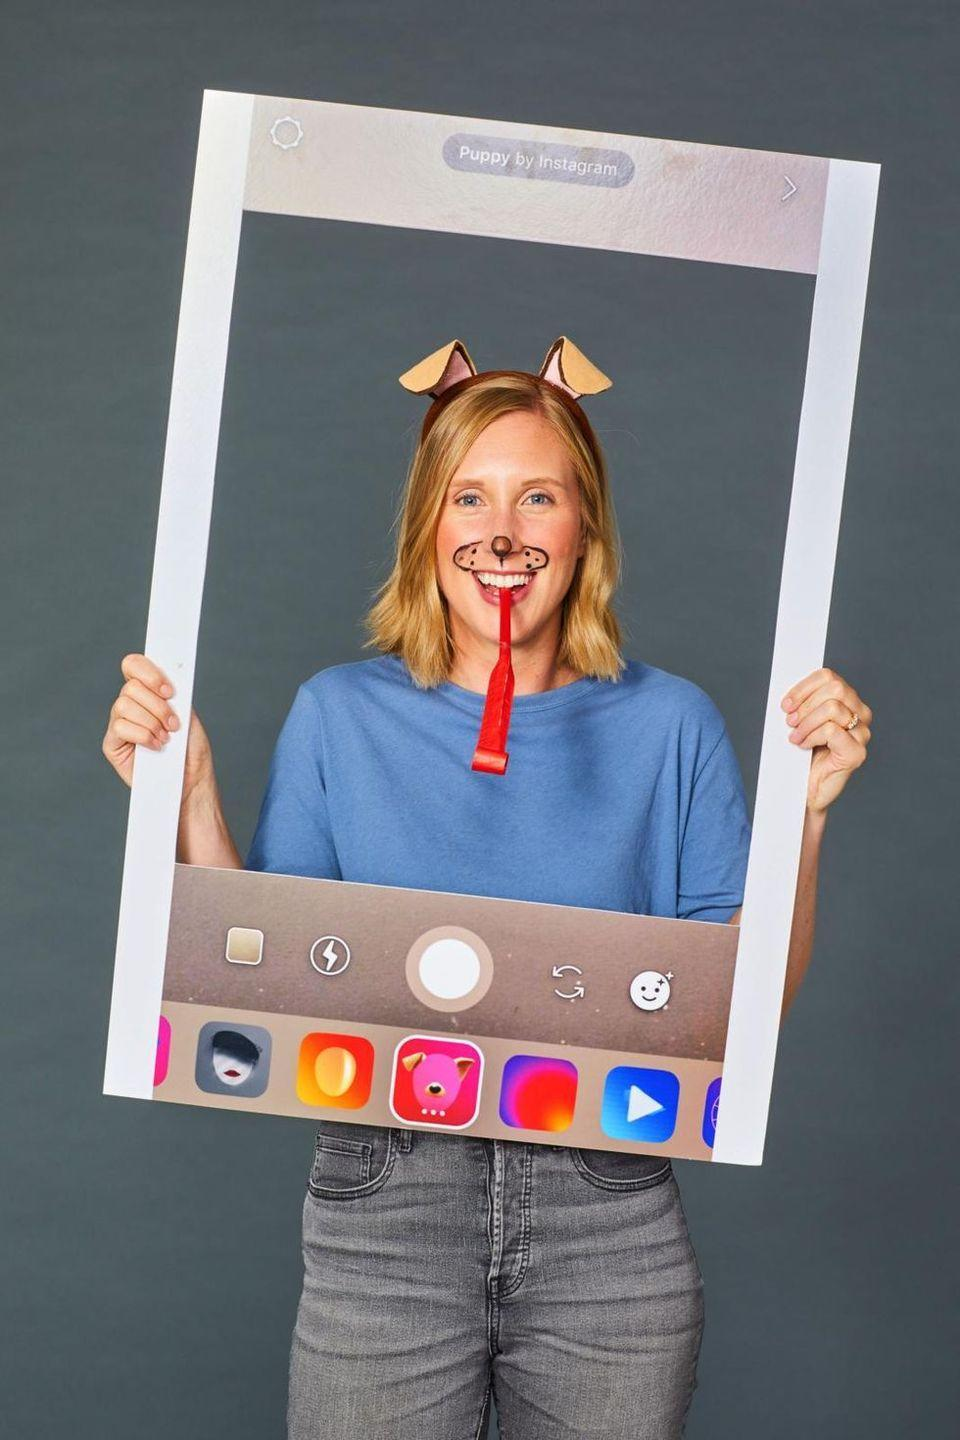 """<p>A costume that allows you to wear jeans and a T-shirt? Sign us up. This DIY idea features the dog filter on Instagram, but if you're a bigger fan of a different filter, by all means go for it.</p><p><strong>Get the tutorial at <a href=""""https://www.goodhousekeeping.com/holidays/halloween-ideas/g2750/easy-last-minute-halloween-costumes-diy/"""" rel=""""nofollow noopener"""" target=""""_blank"""" data-ylk=""""slk:Good Housekeeping"""" class=""""link rapid-noclick-resp"""">Good Housekeeping</a>.</strong></p>"""